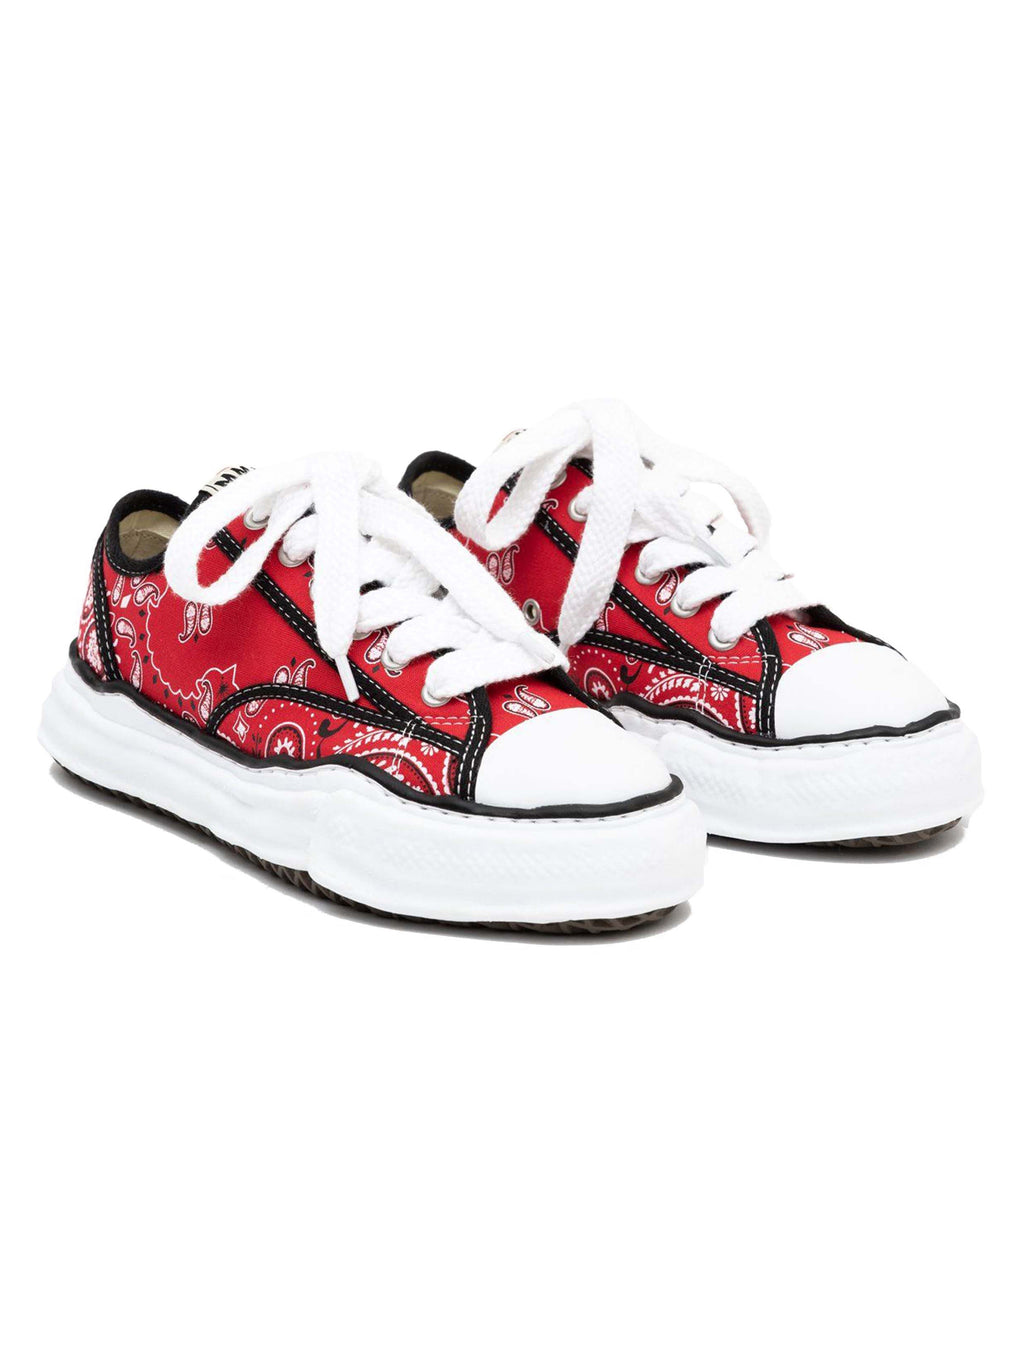 Red Bandana Printed Canvas Sneakers